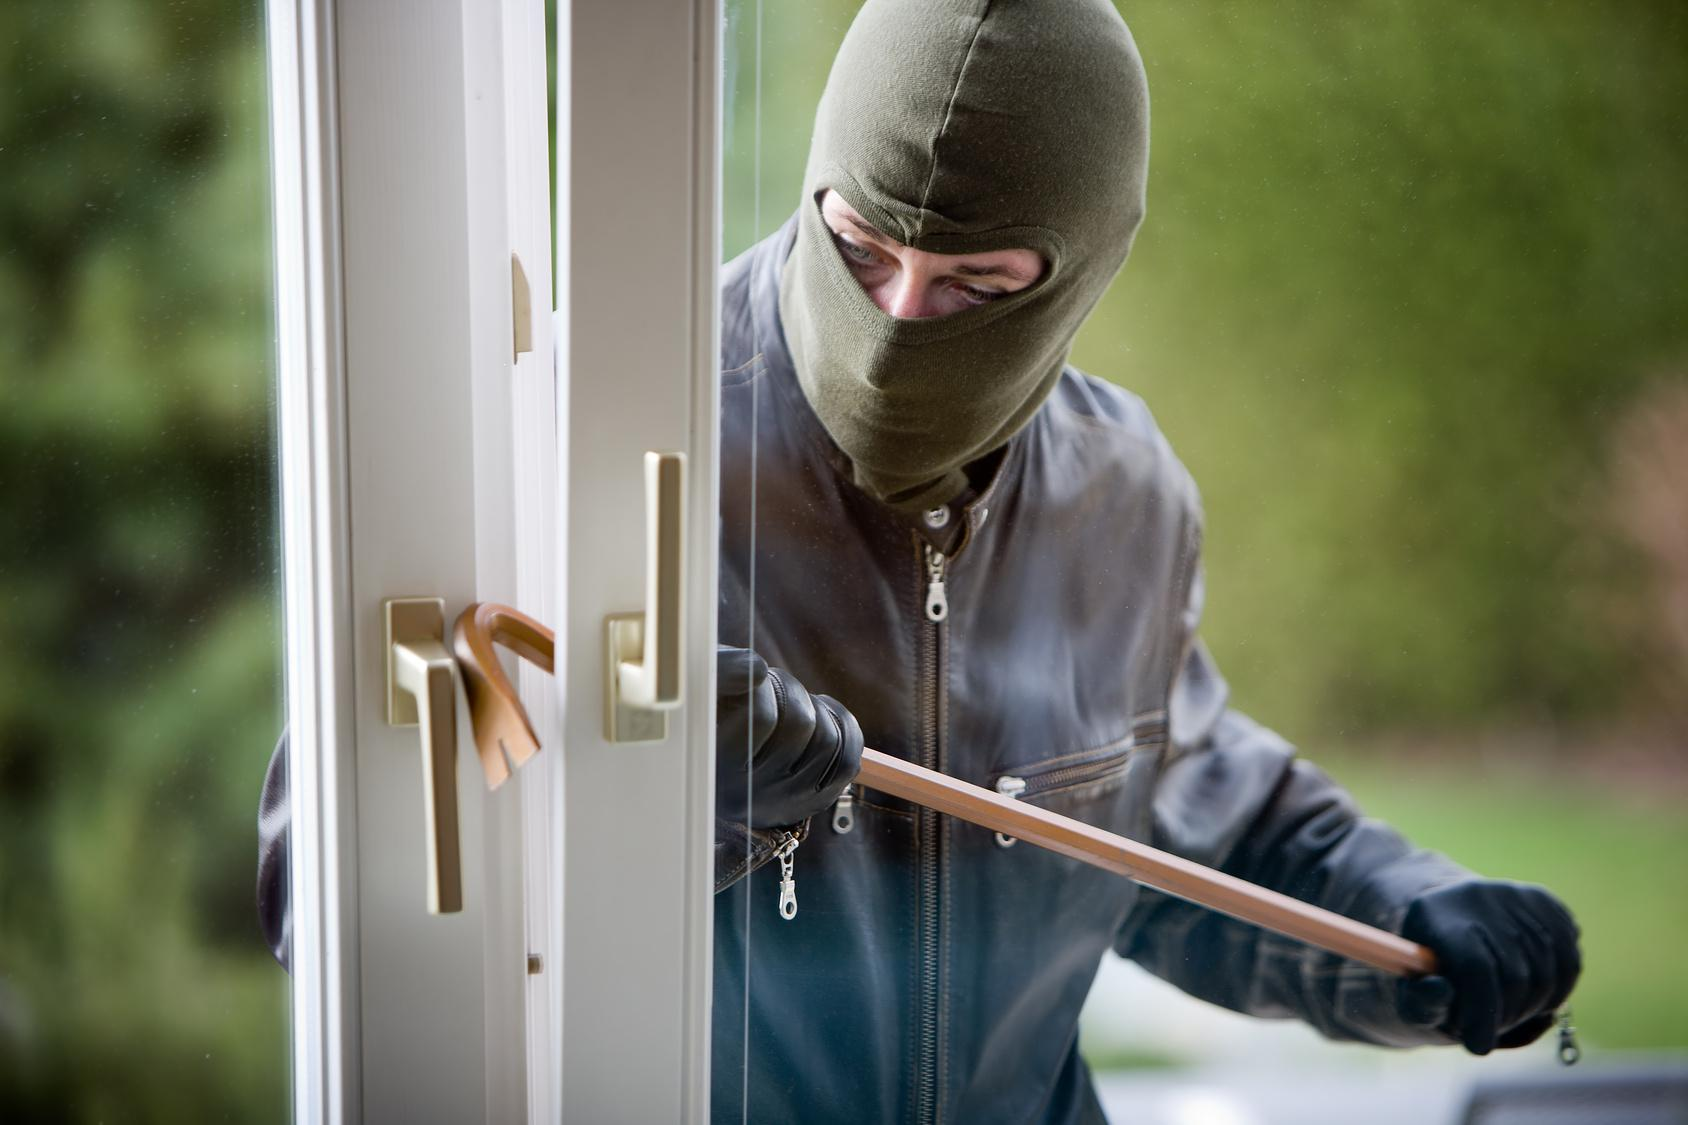 Burglar Proof Your House